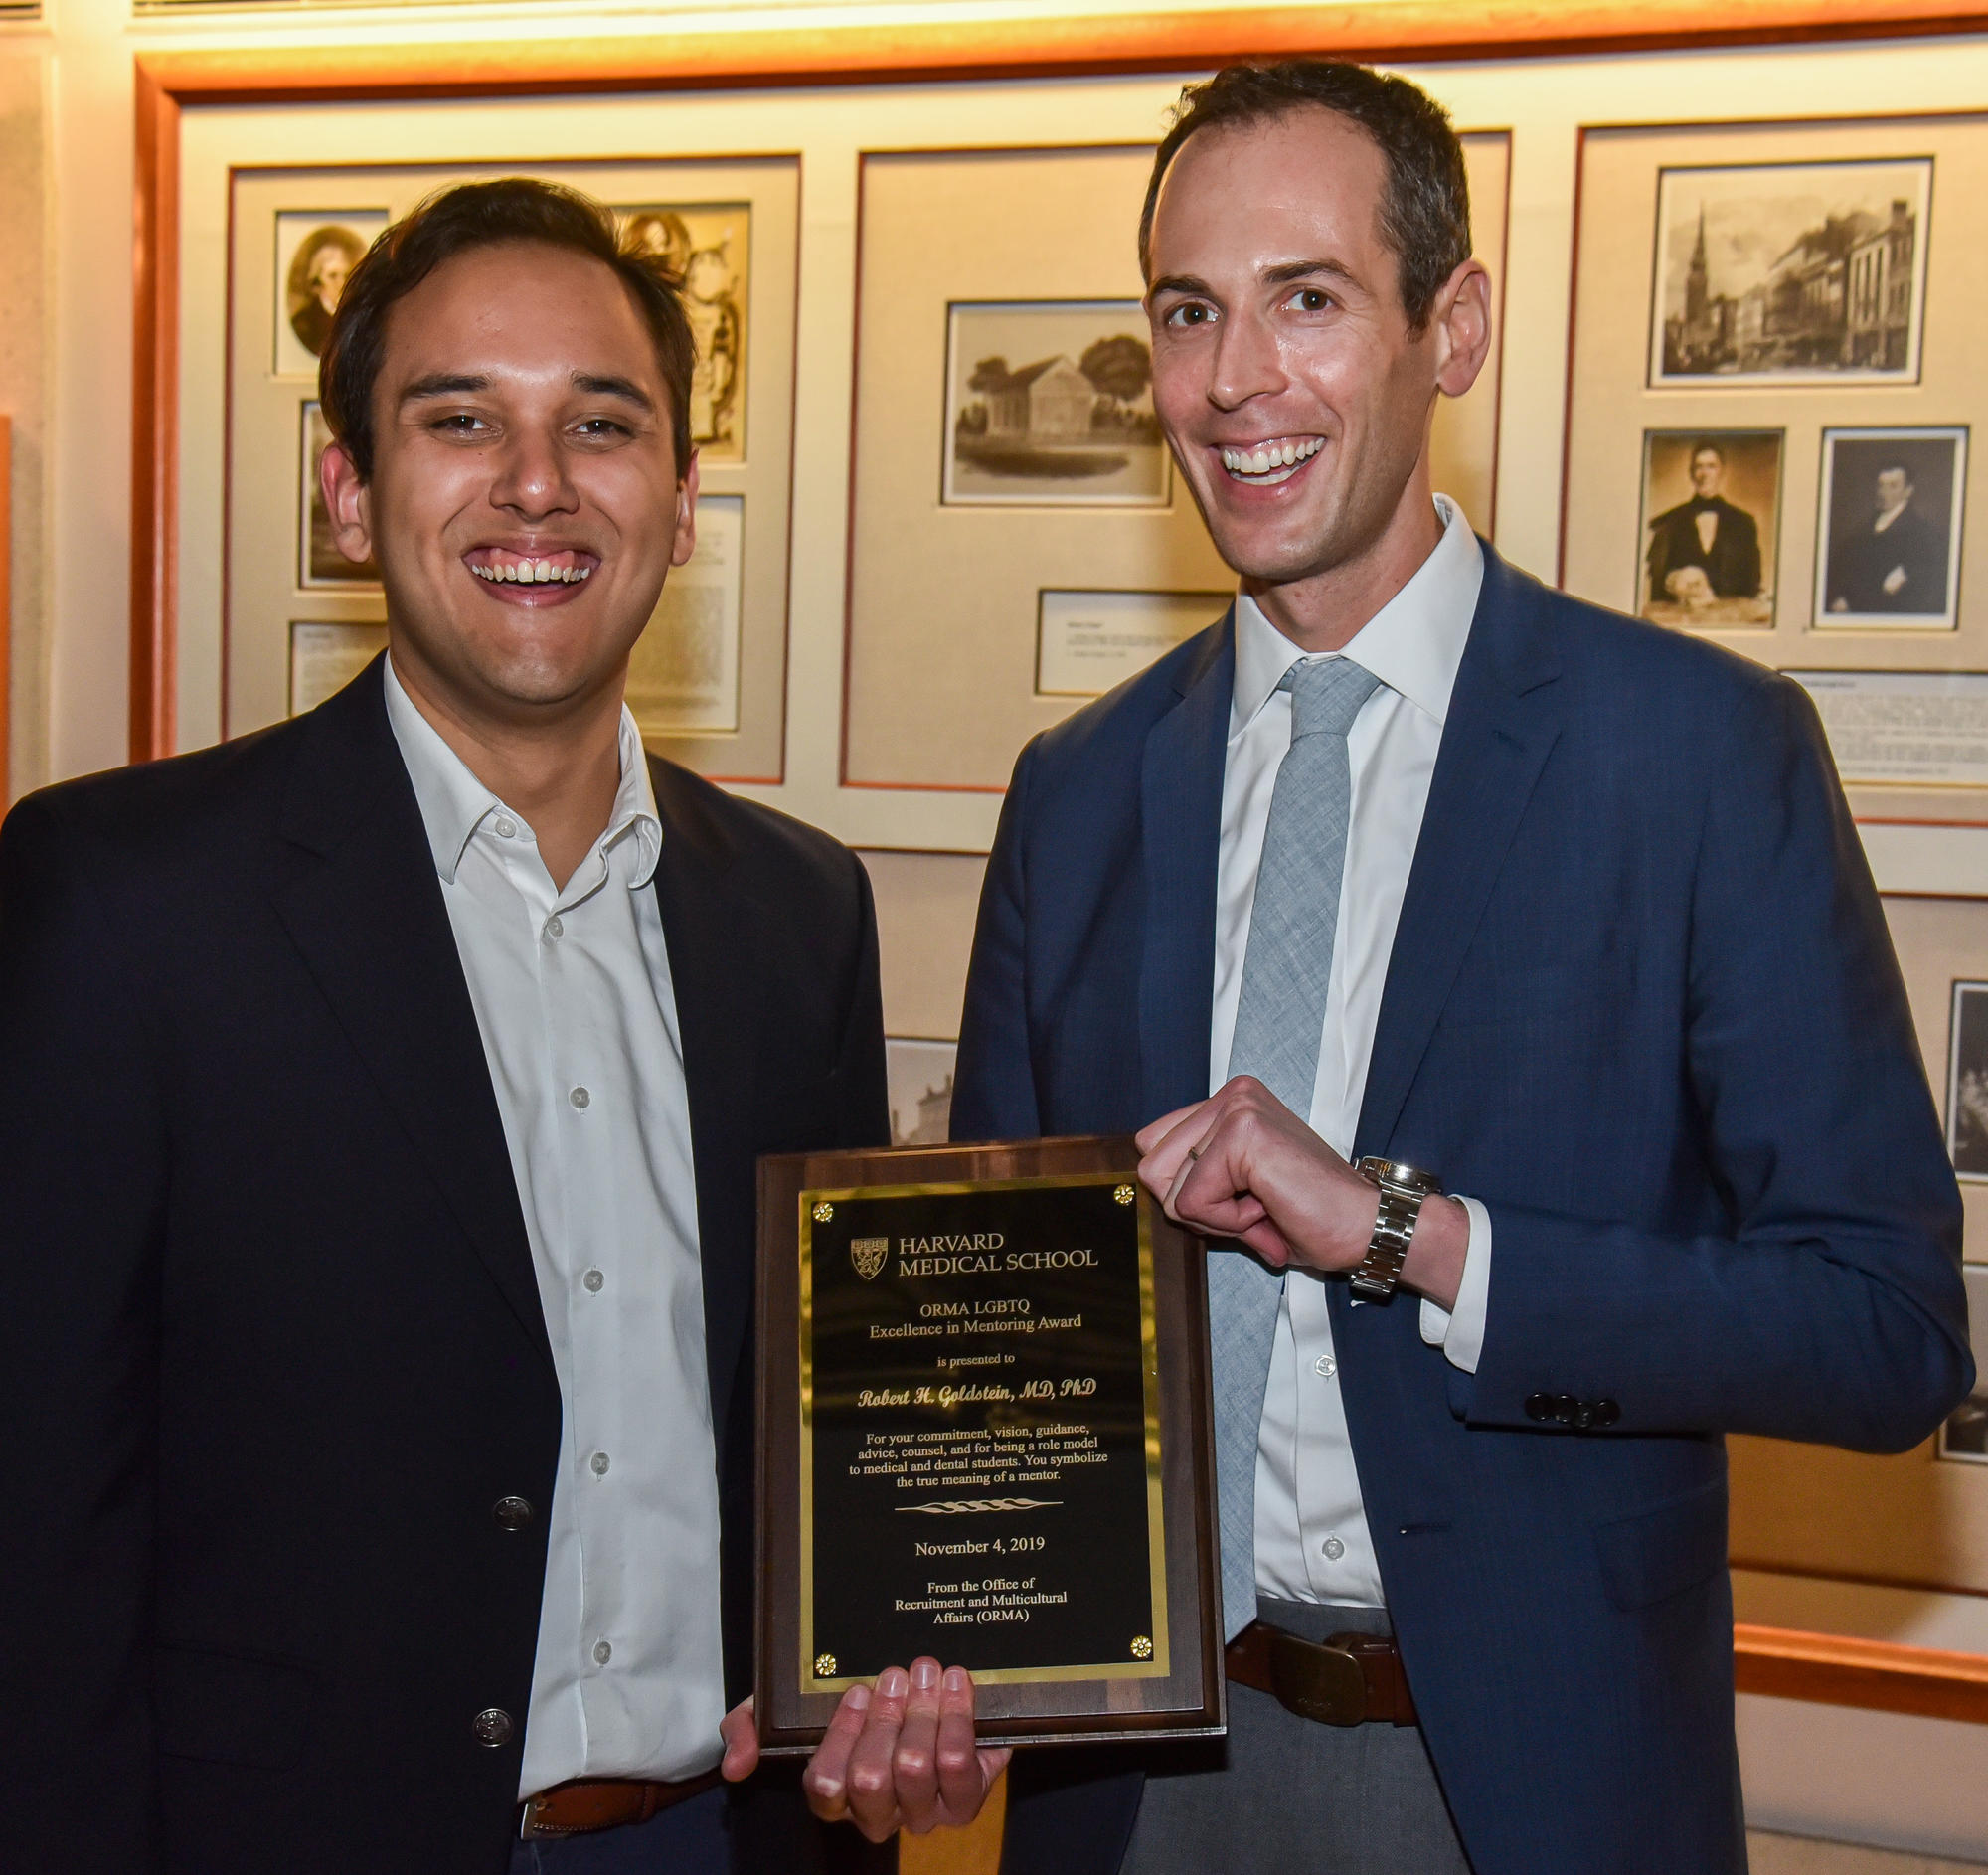 Nic Freeman and Dr. Robert Goldstein with award plaque. Image: Steve Lipofsky